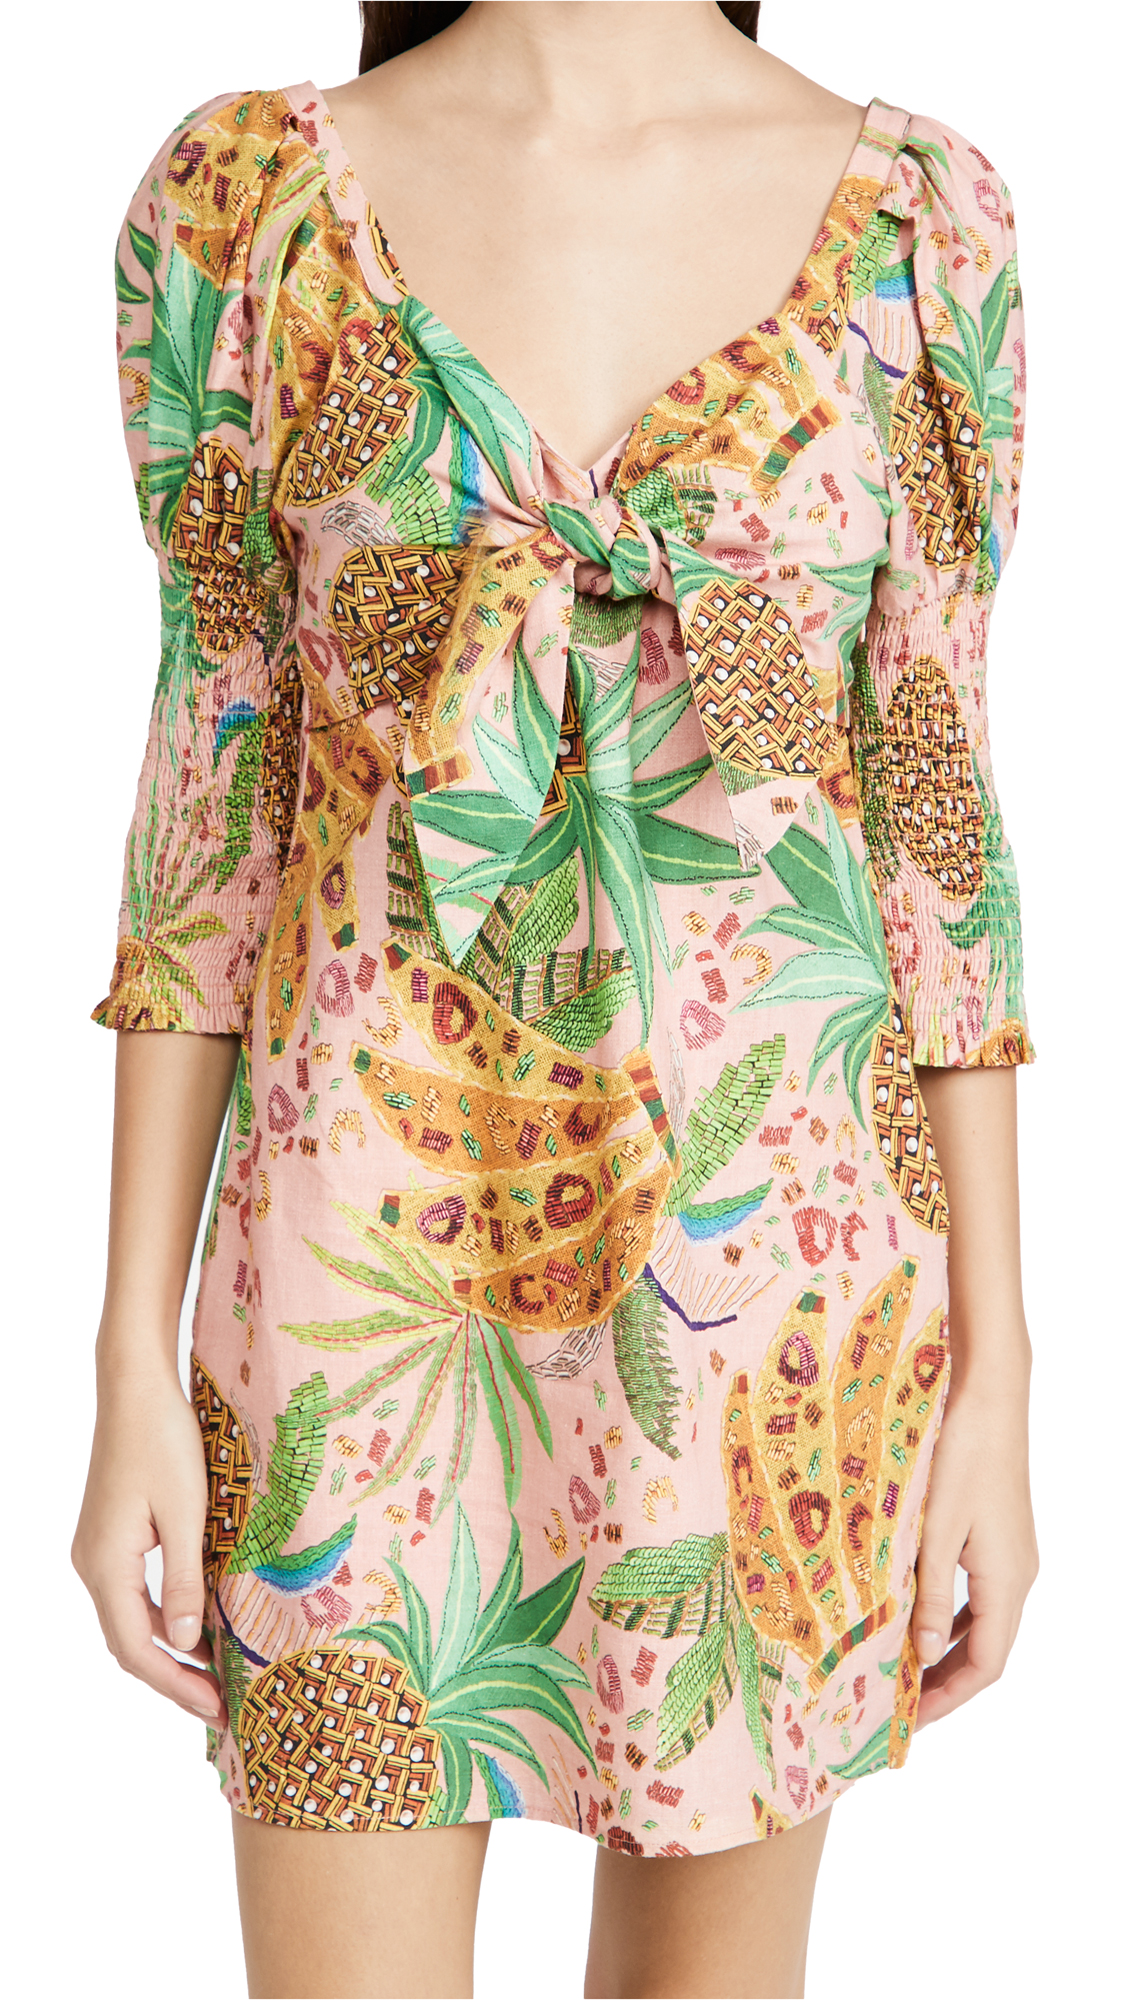 FARM Rio Pink Mixed Fruits Mini Dress